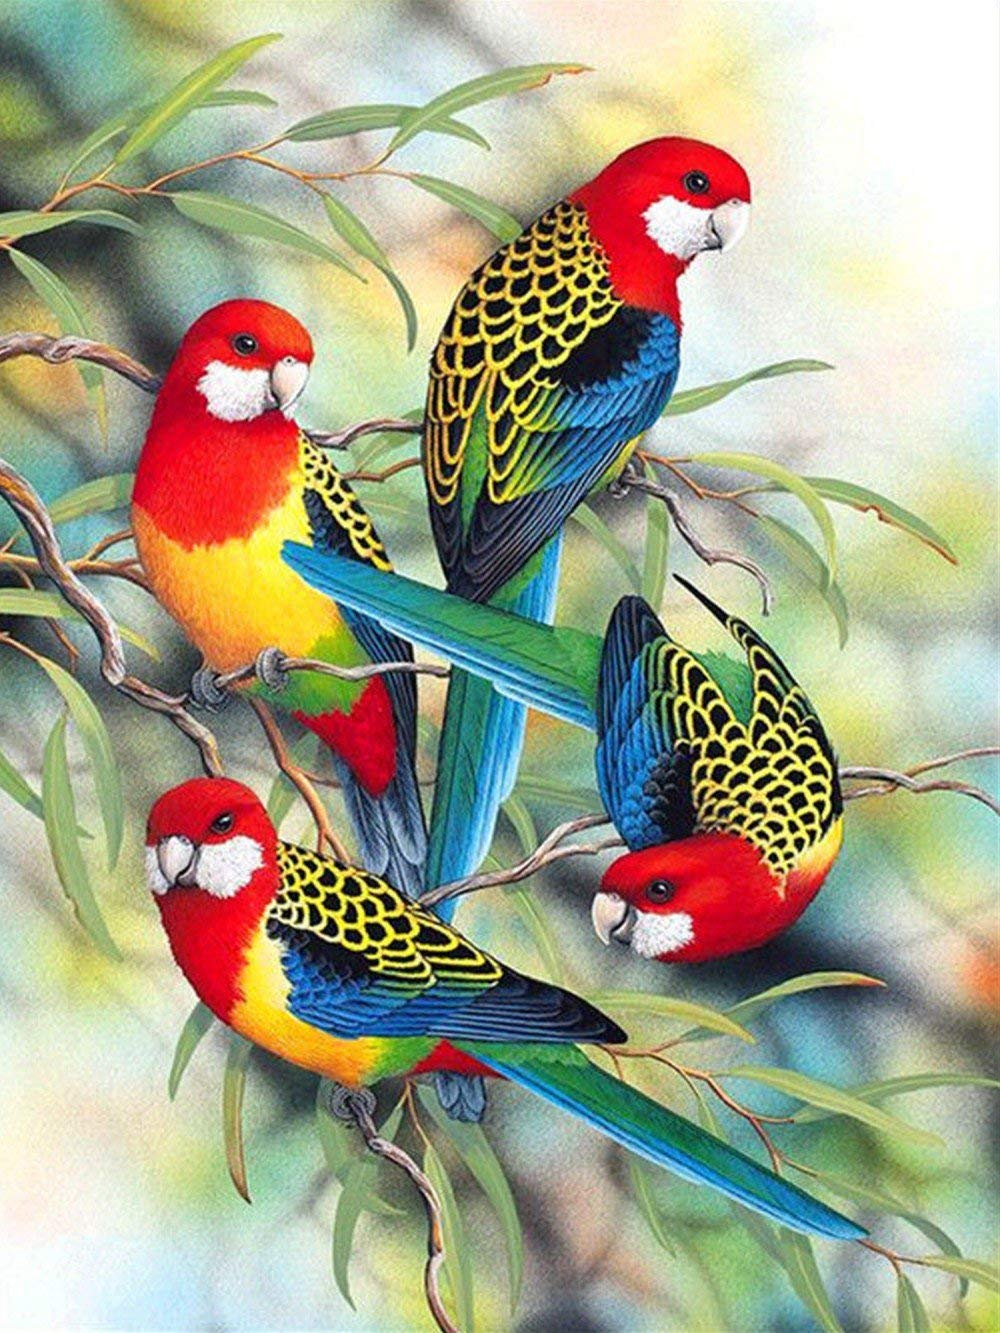 TianMai Hot New DIY 5D Diamond Painting Kits Diamond Embroidery Painting Pasted Paint By Number Kit Stitch Craft Kit Home Decor Wall Sticker - Bird, 30x38cm